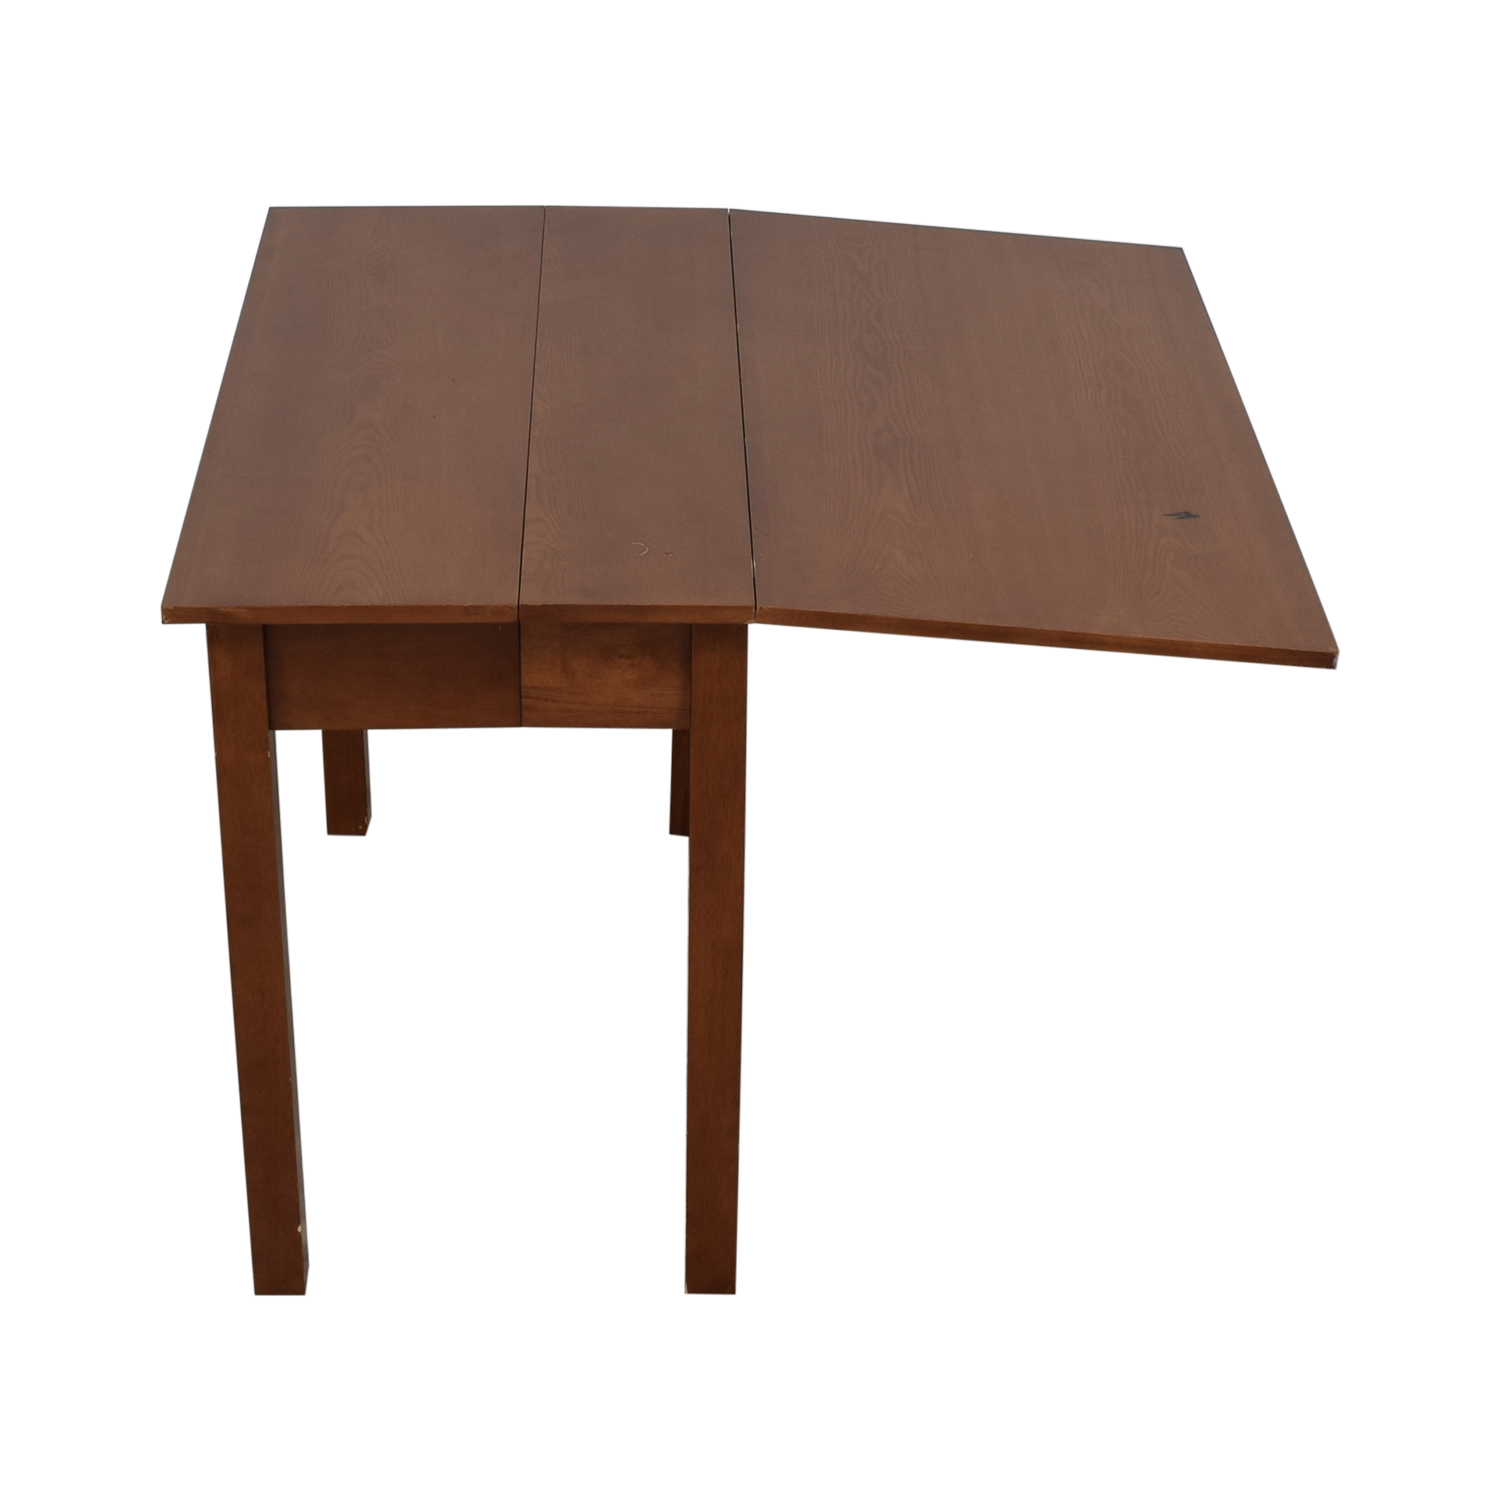 Extendable Table with Drawers used